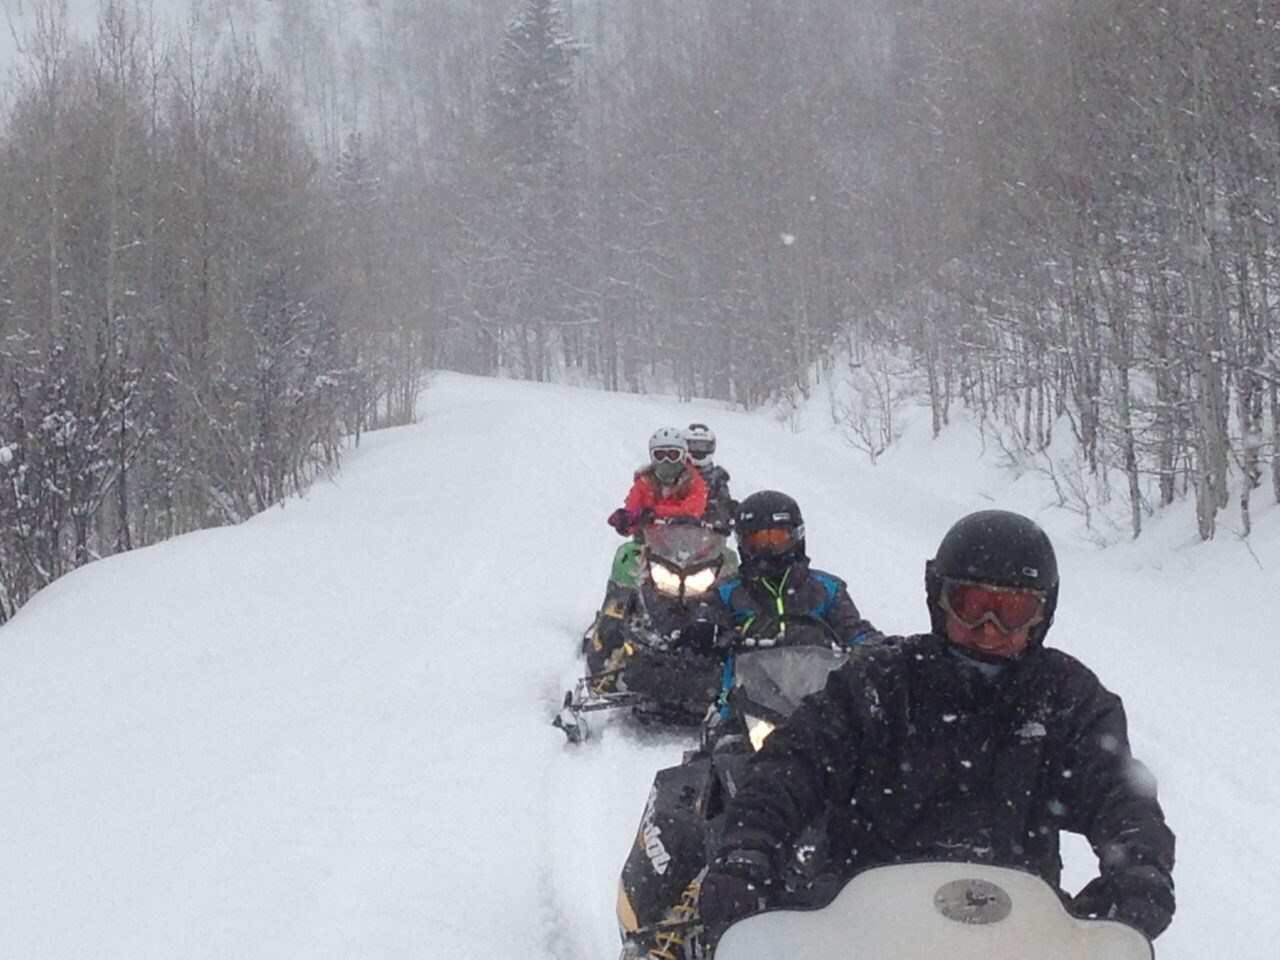 snowmobiling on snowy day